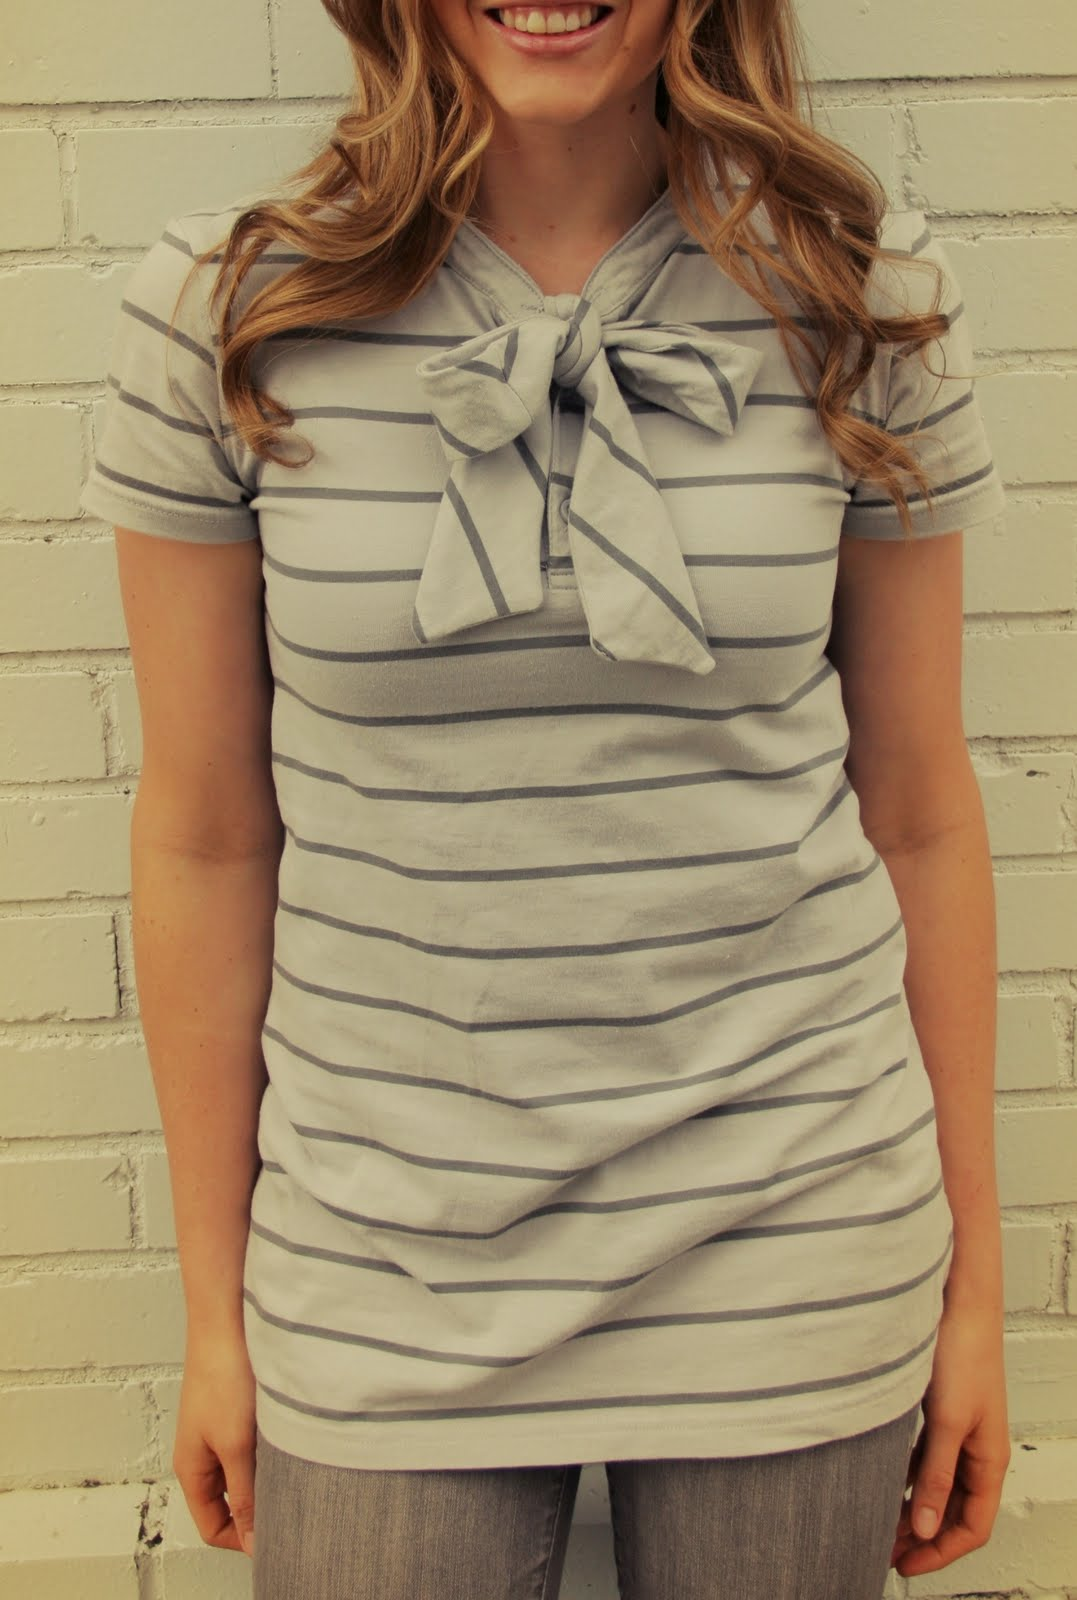 Eyelets and Bows shirts